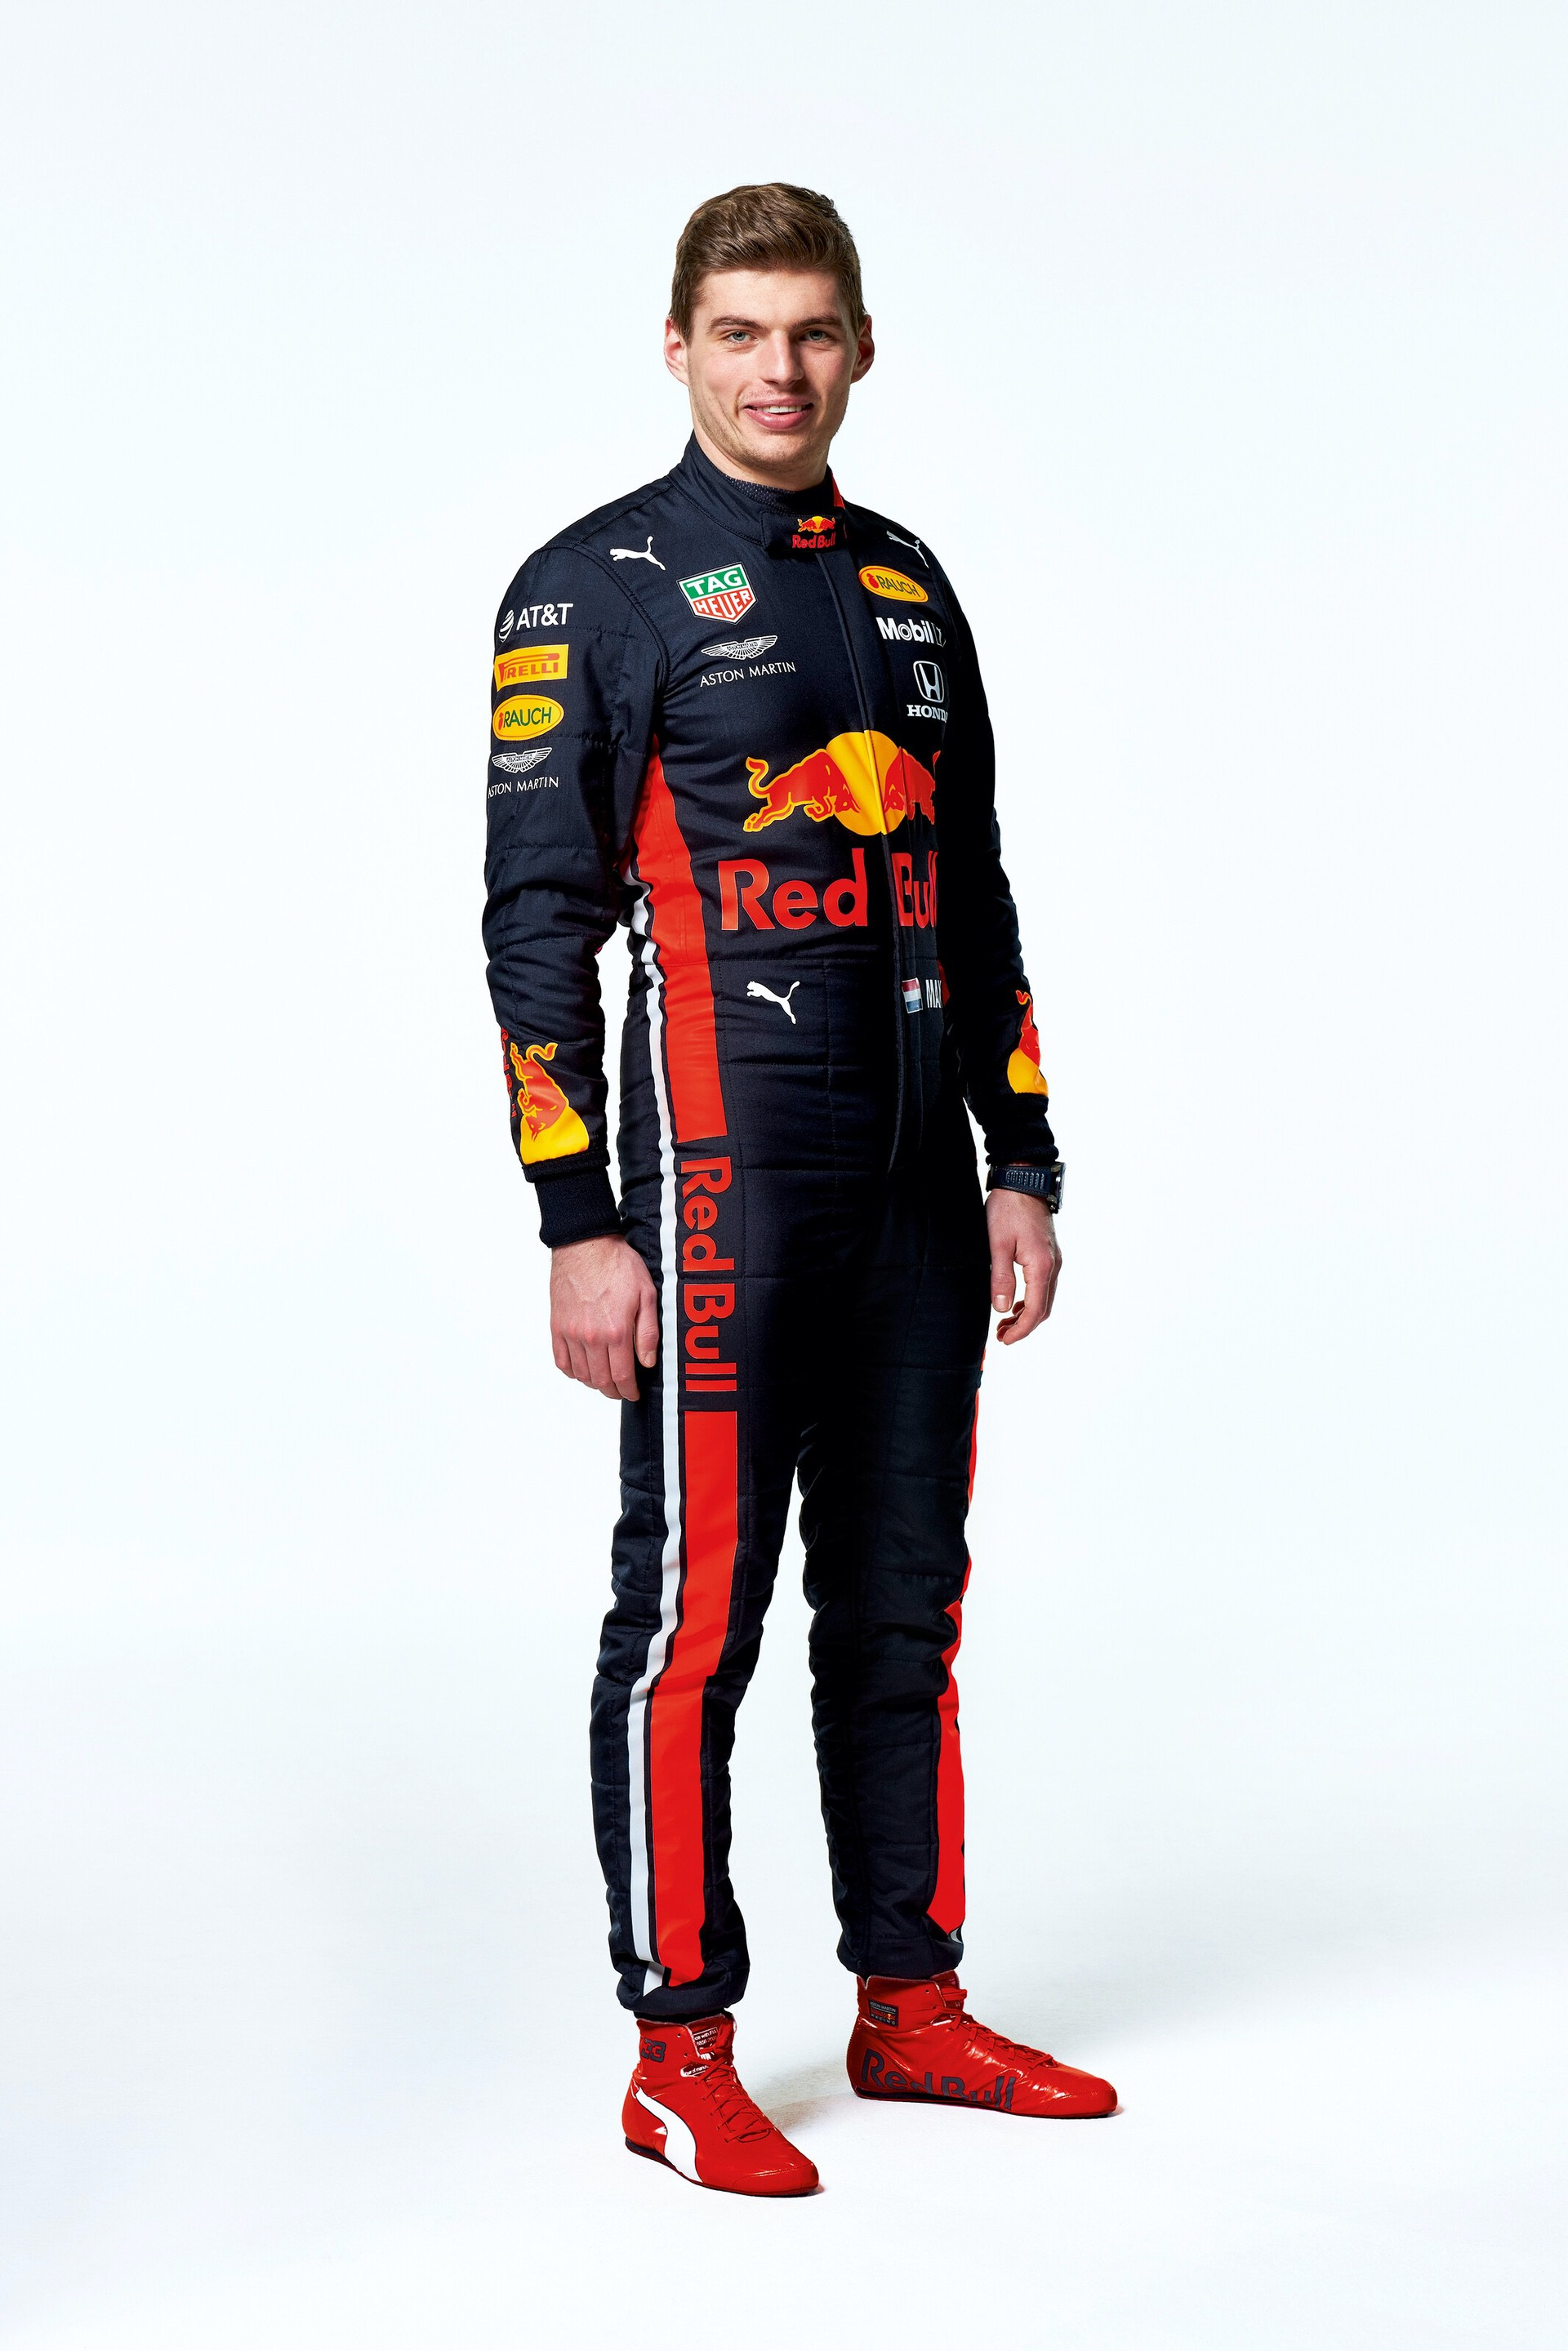 Max Verstappen seen during the Red Bull Racing 2019 Studio Shoot, February 2019, United Kingdom // Dustin Snipes/Red Bull Content Pool // AP-1YFPFH7251W11 // Usage for editorial use only // Please go to www.redbullcontentpool.com for further information. //